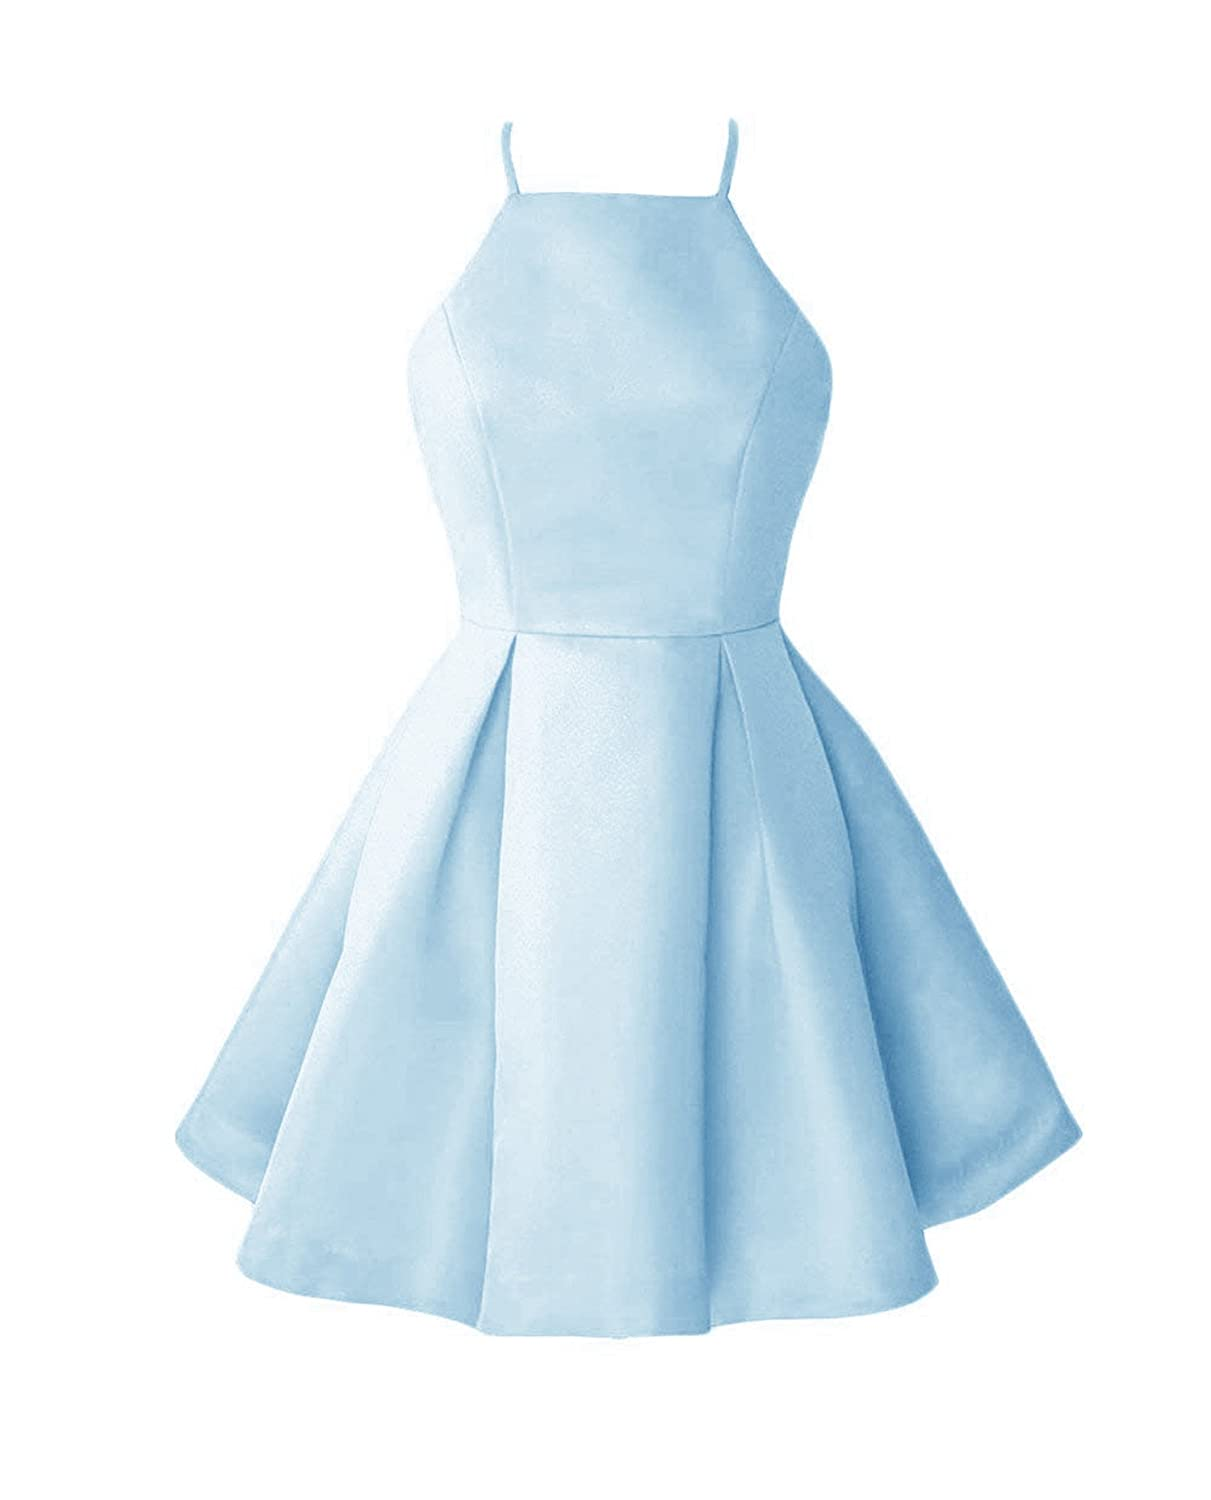 Bbaby bluee WHZZ Womens ALine Homecoming Dresses Mini Short Cocktail Party Dresses